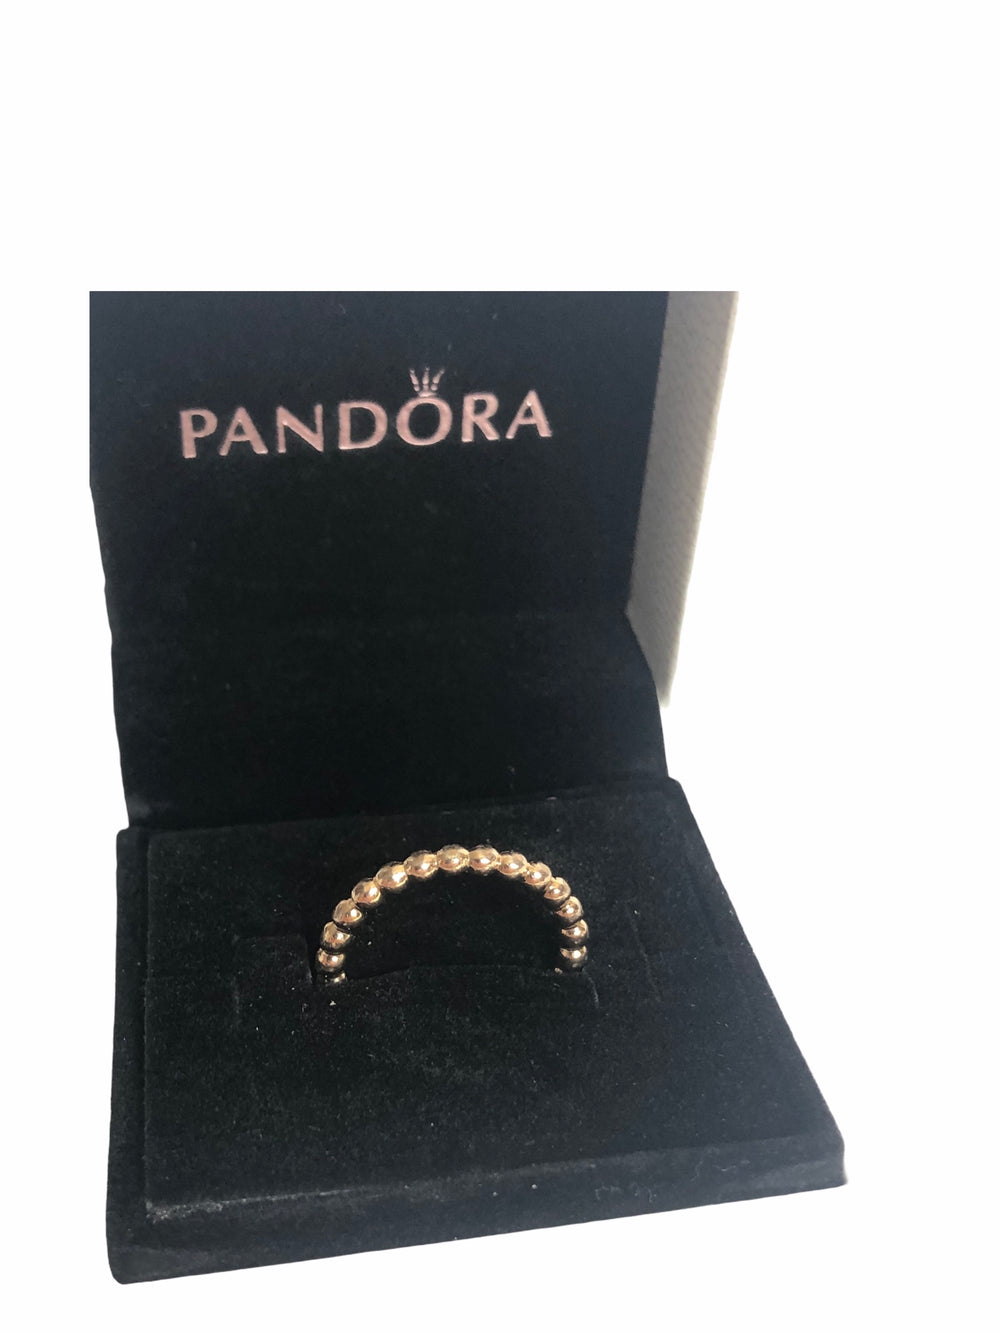 Pandora Goldtone Ring - As Seen on Instagram 18/11/20